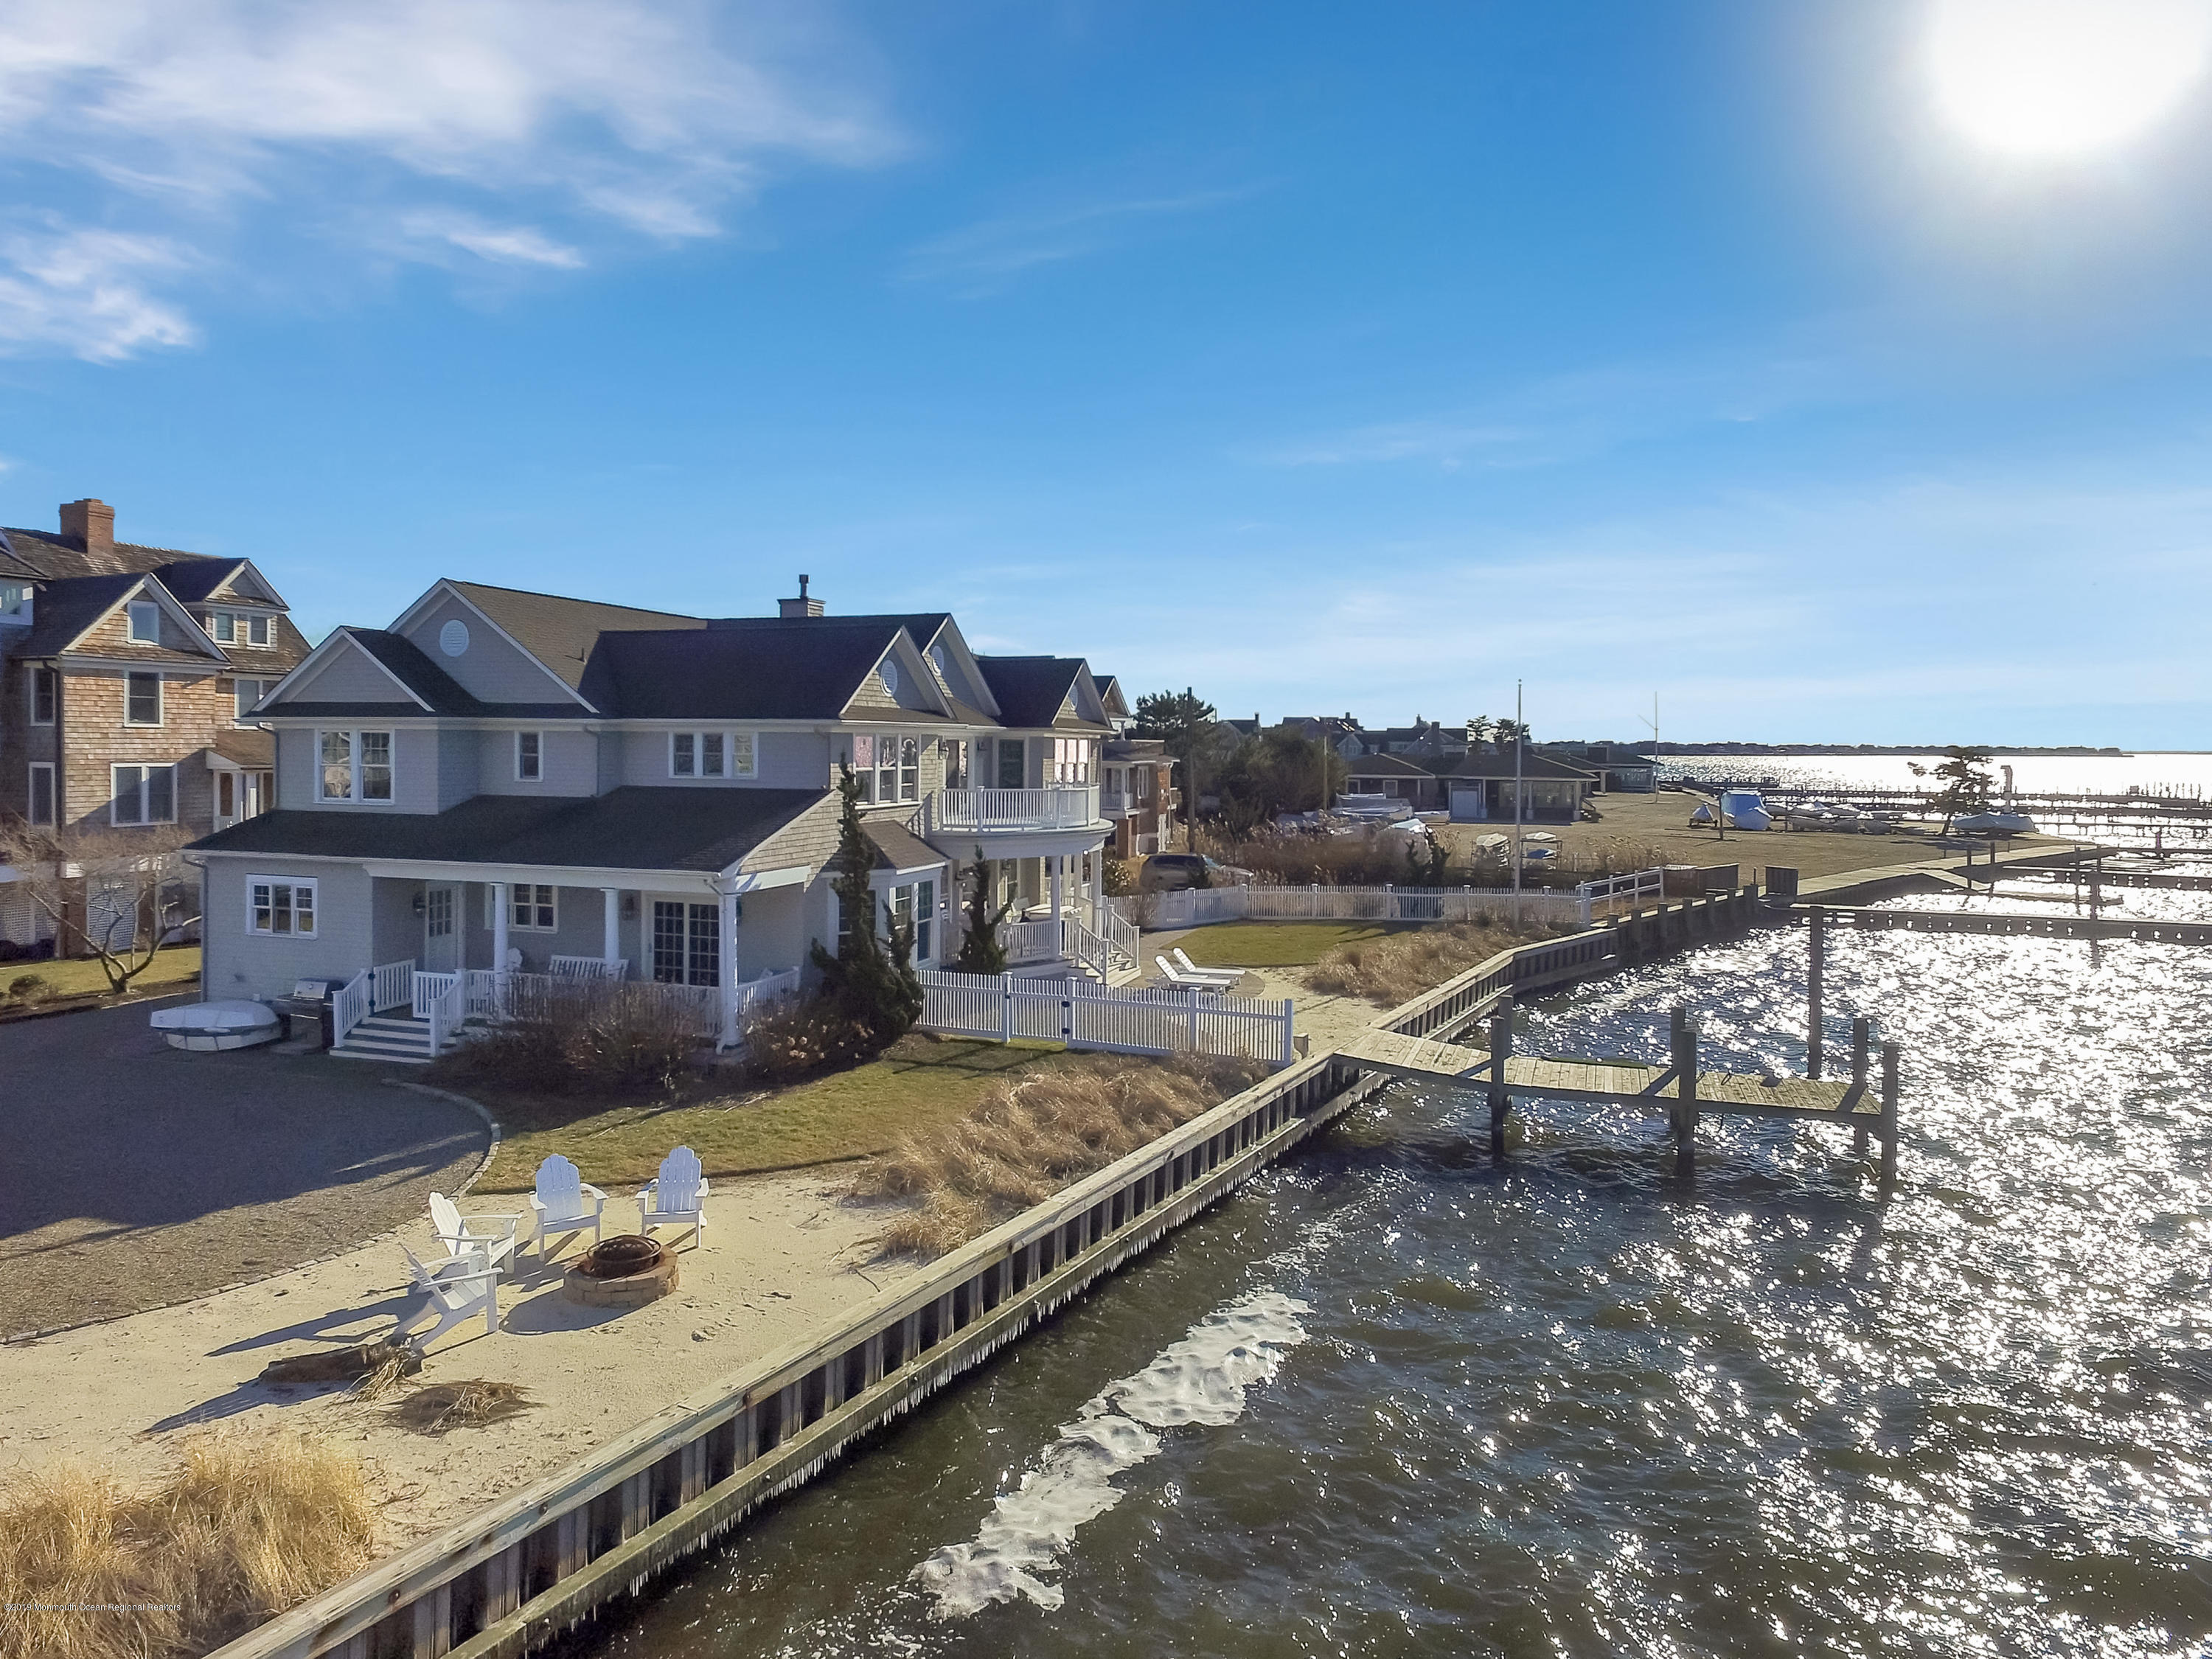 Photo of 306 Old Bridge Street, Mantoloking, NJ 08738